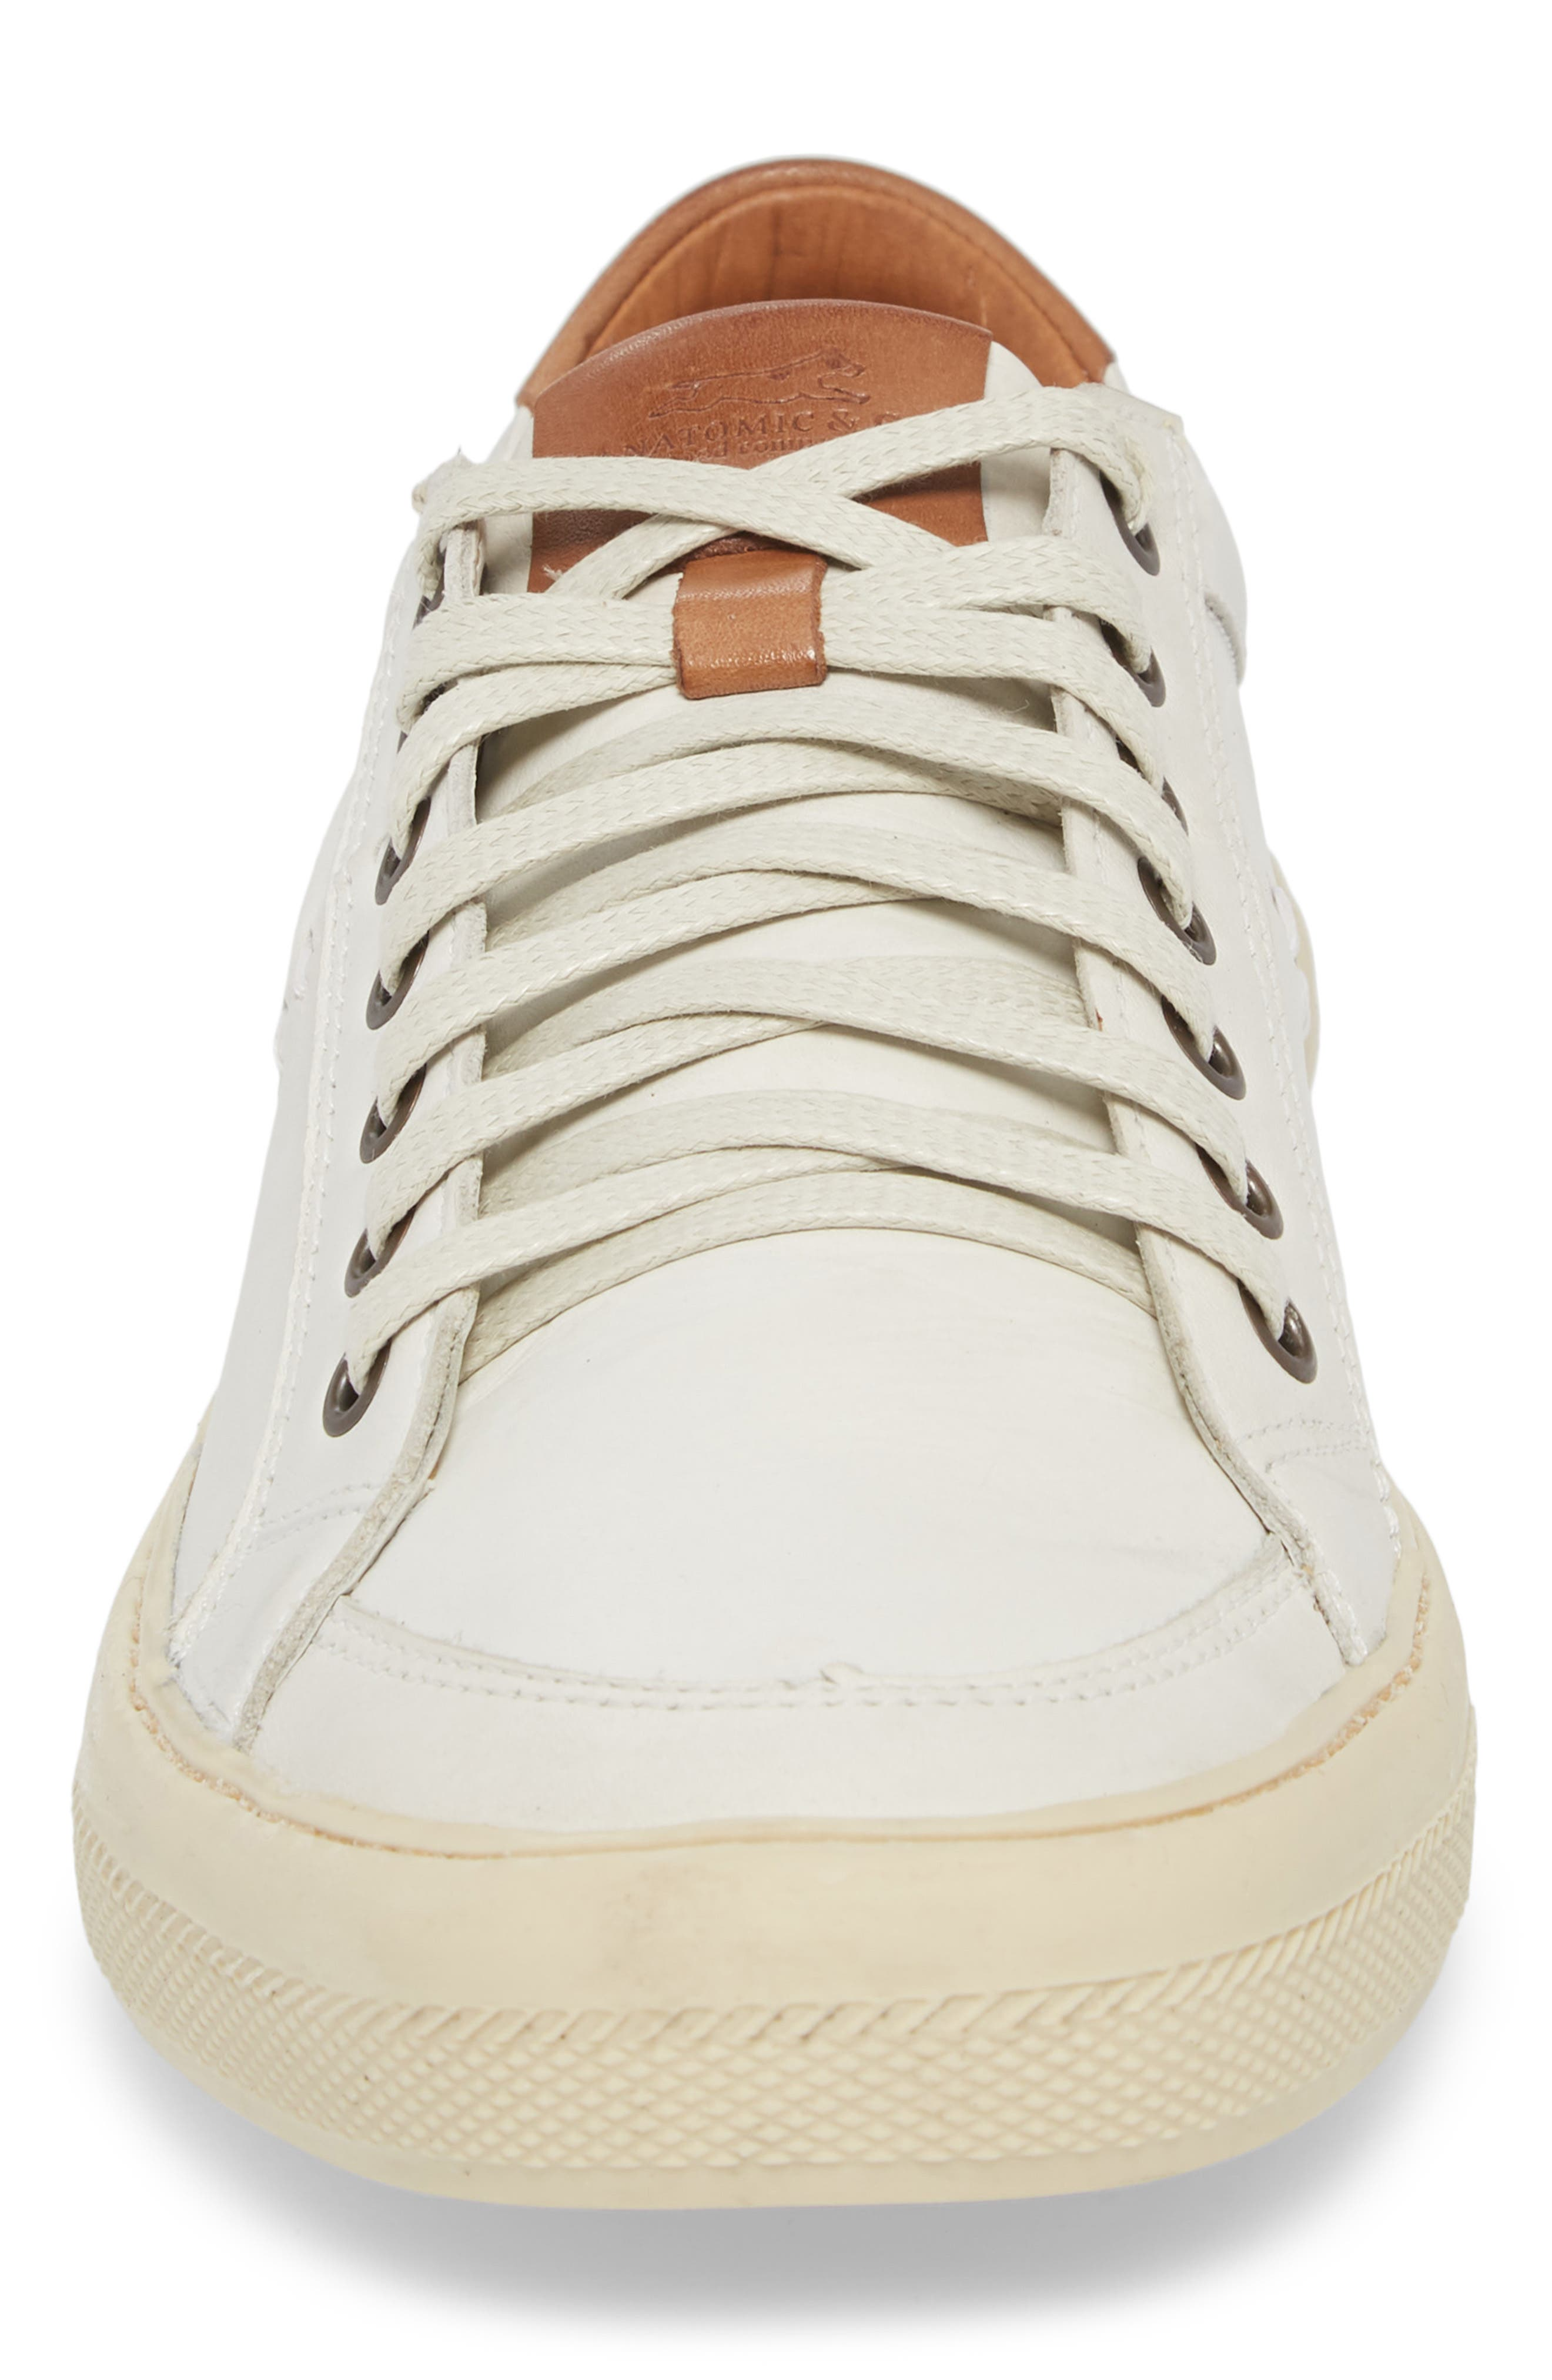 Bilac Low Top Sneaker,                             Alternate thumbnail 4, color,                             Touch Ice/ Bronze Leather